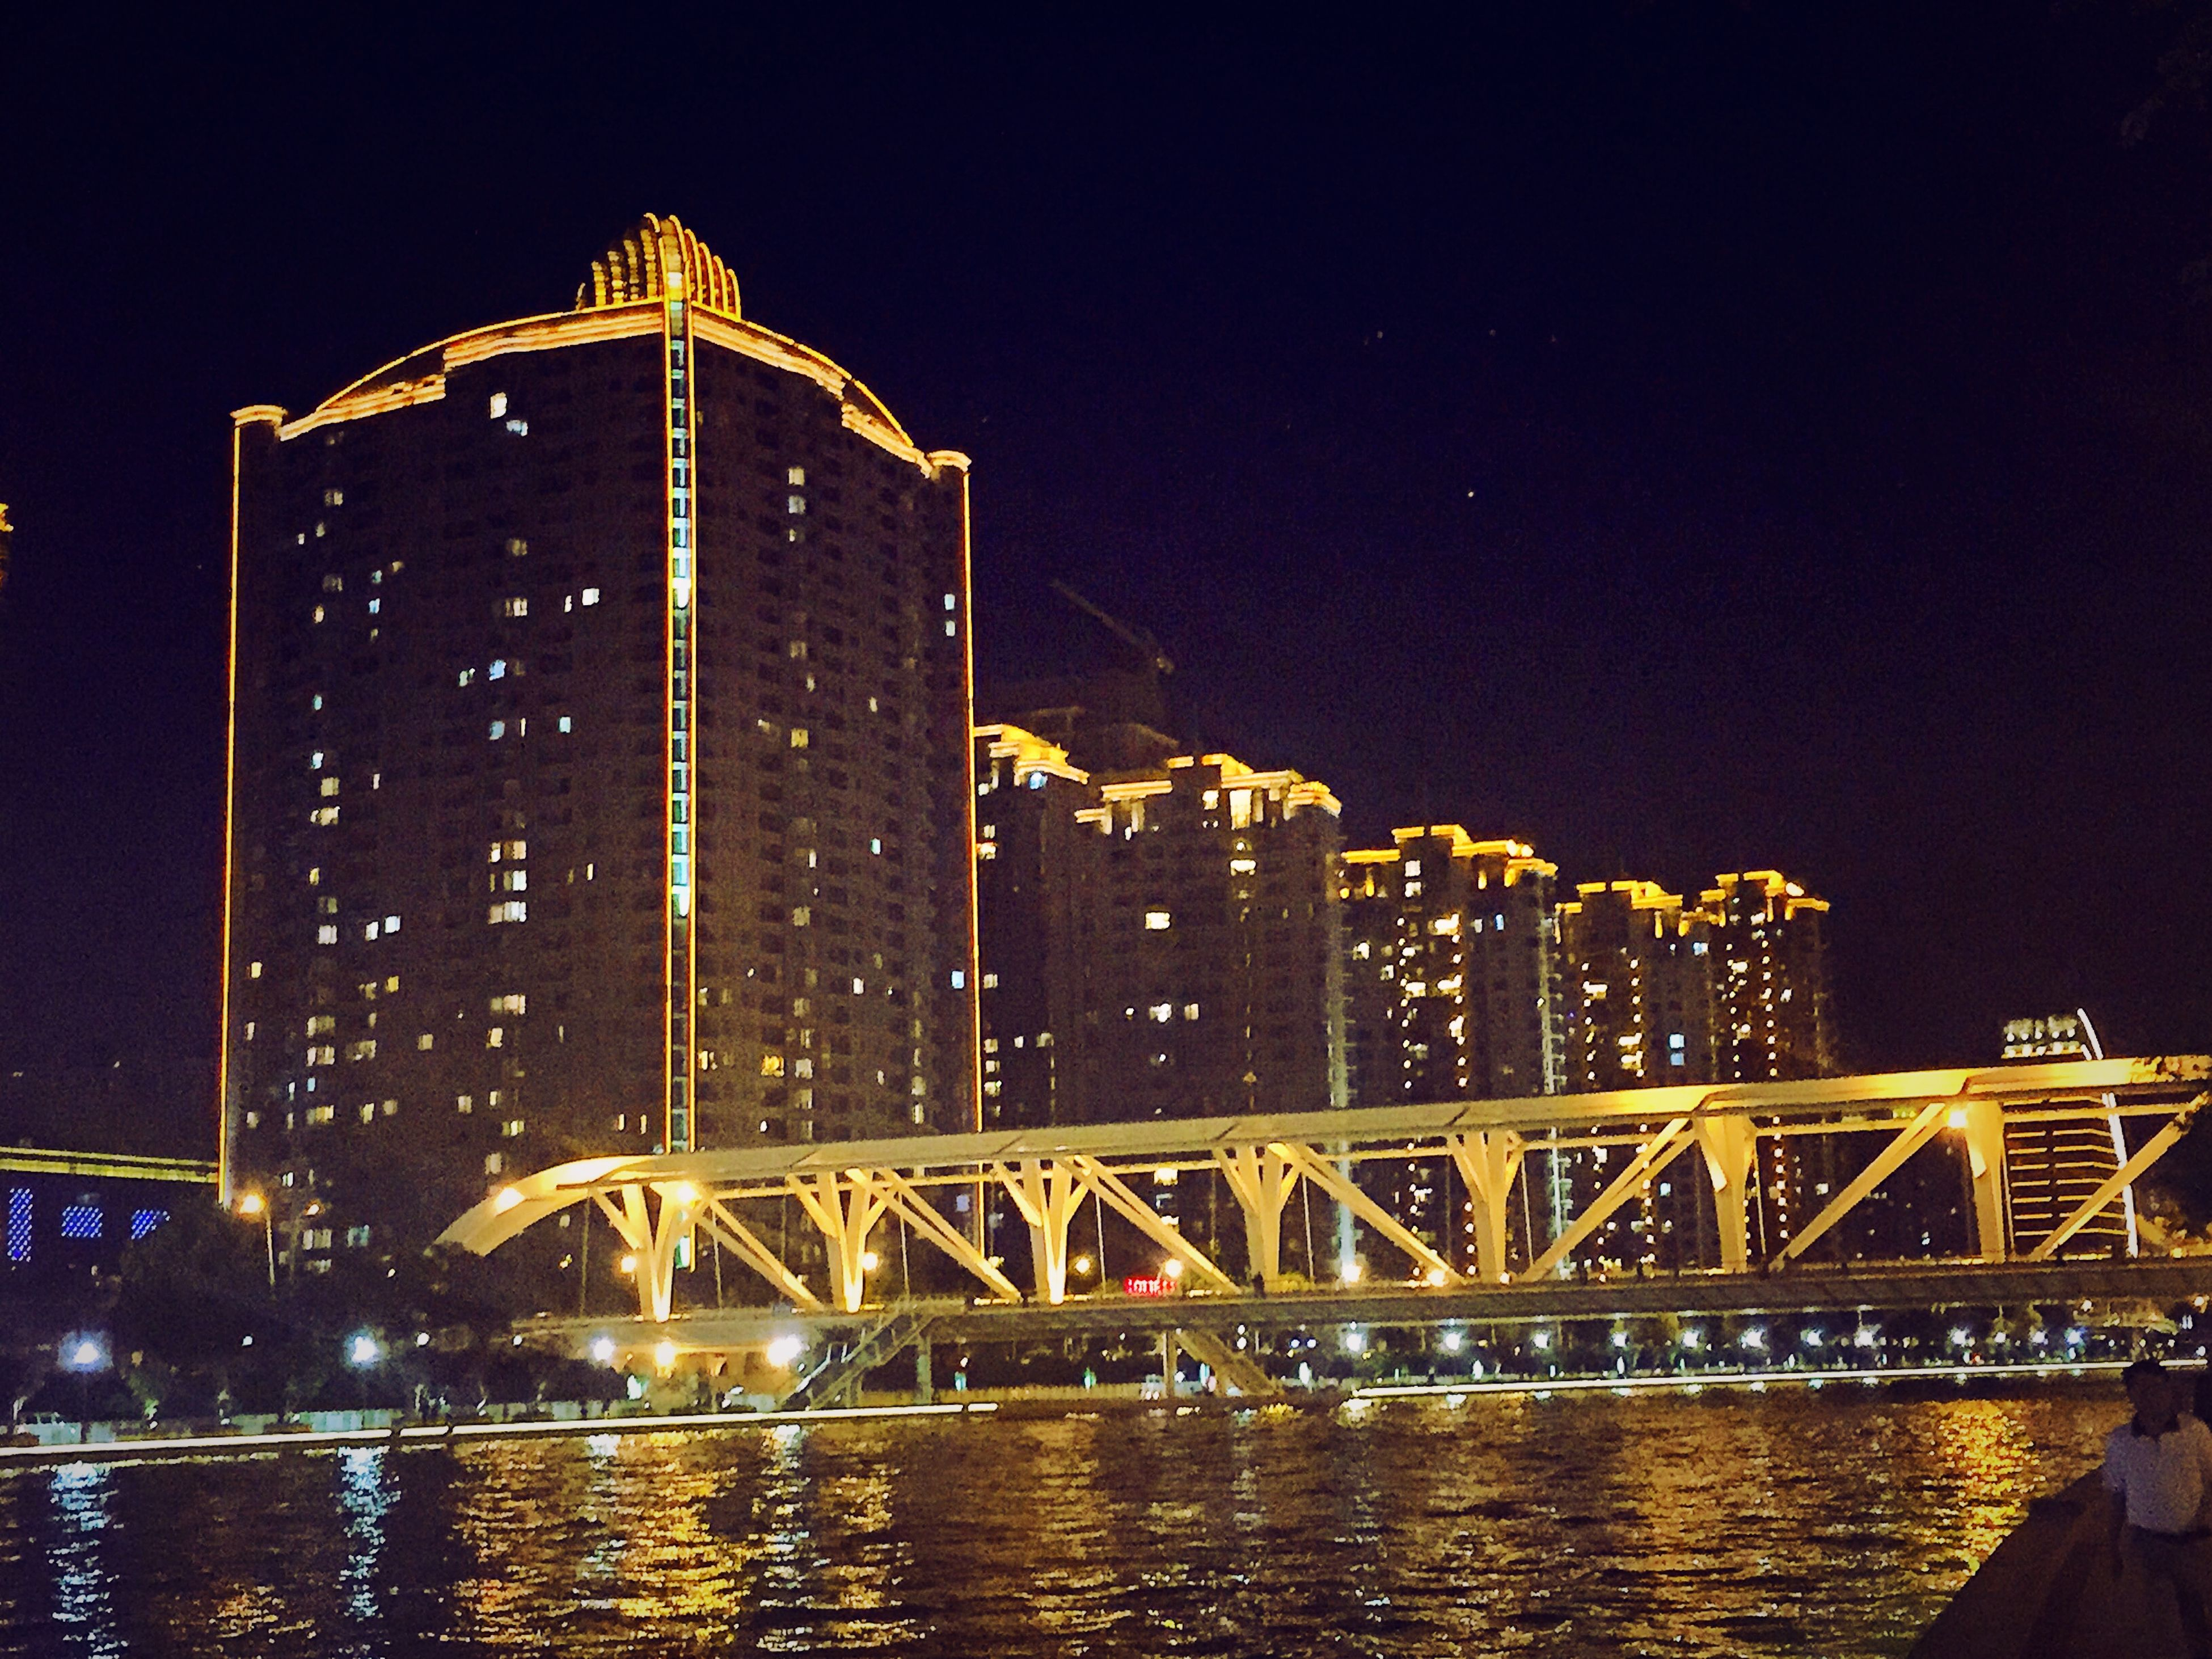 night, illuminated, architecture, built structure, building exterior, water, city, reflection, bridge - man made structure, river, connection, clear sky, waterfront, sky, travel destinations, copy space, capital cities, low angle view, no people, famous place